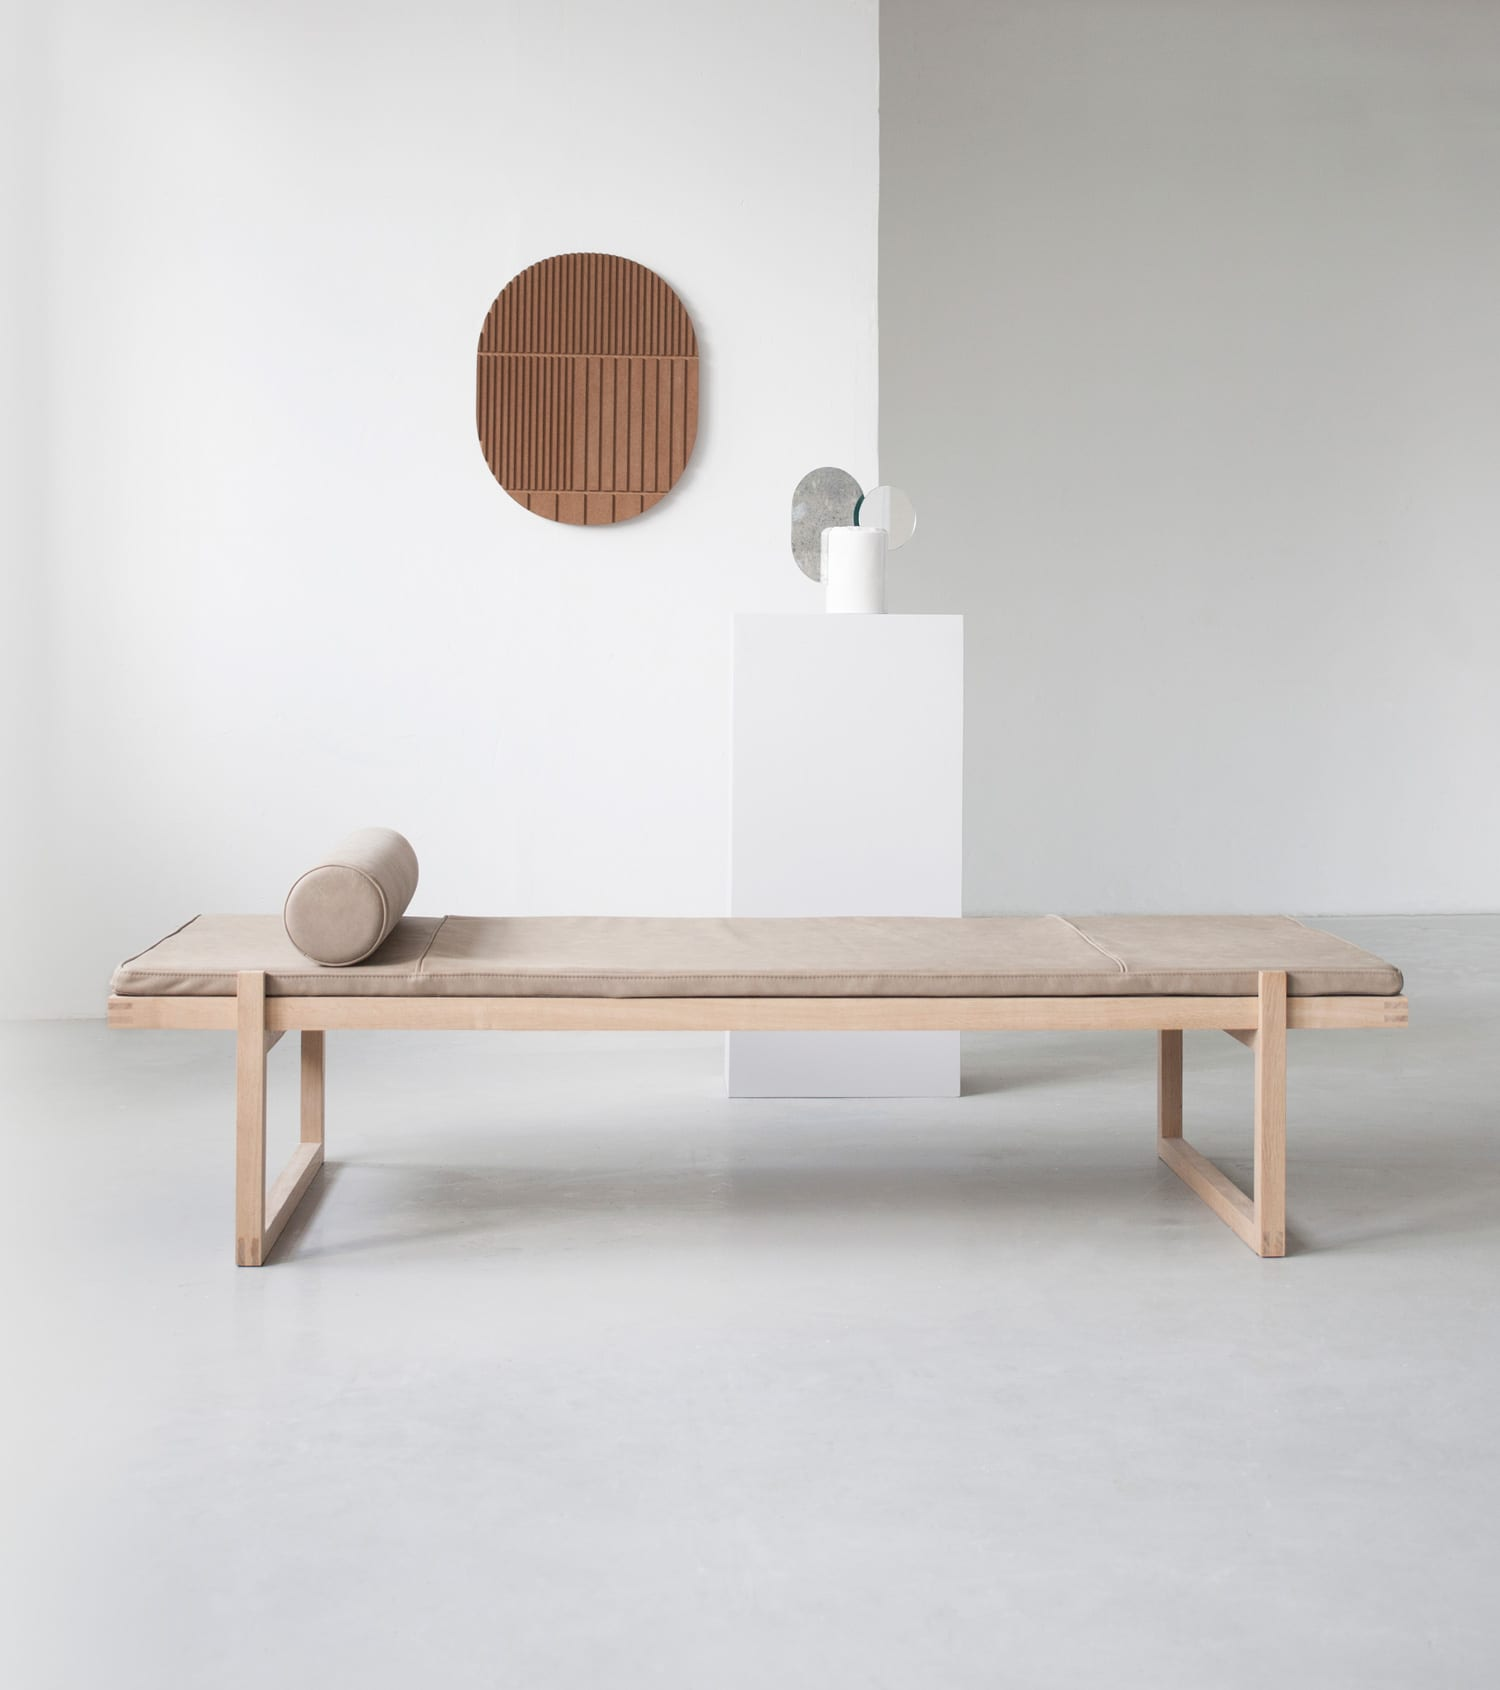 Best Of Stockholm Design Week 2019, Kristina Dam Studio | Yellowtrace